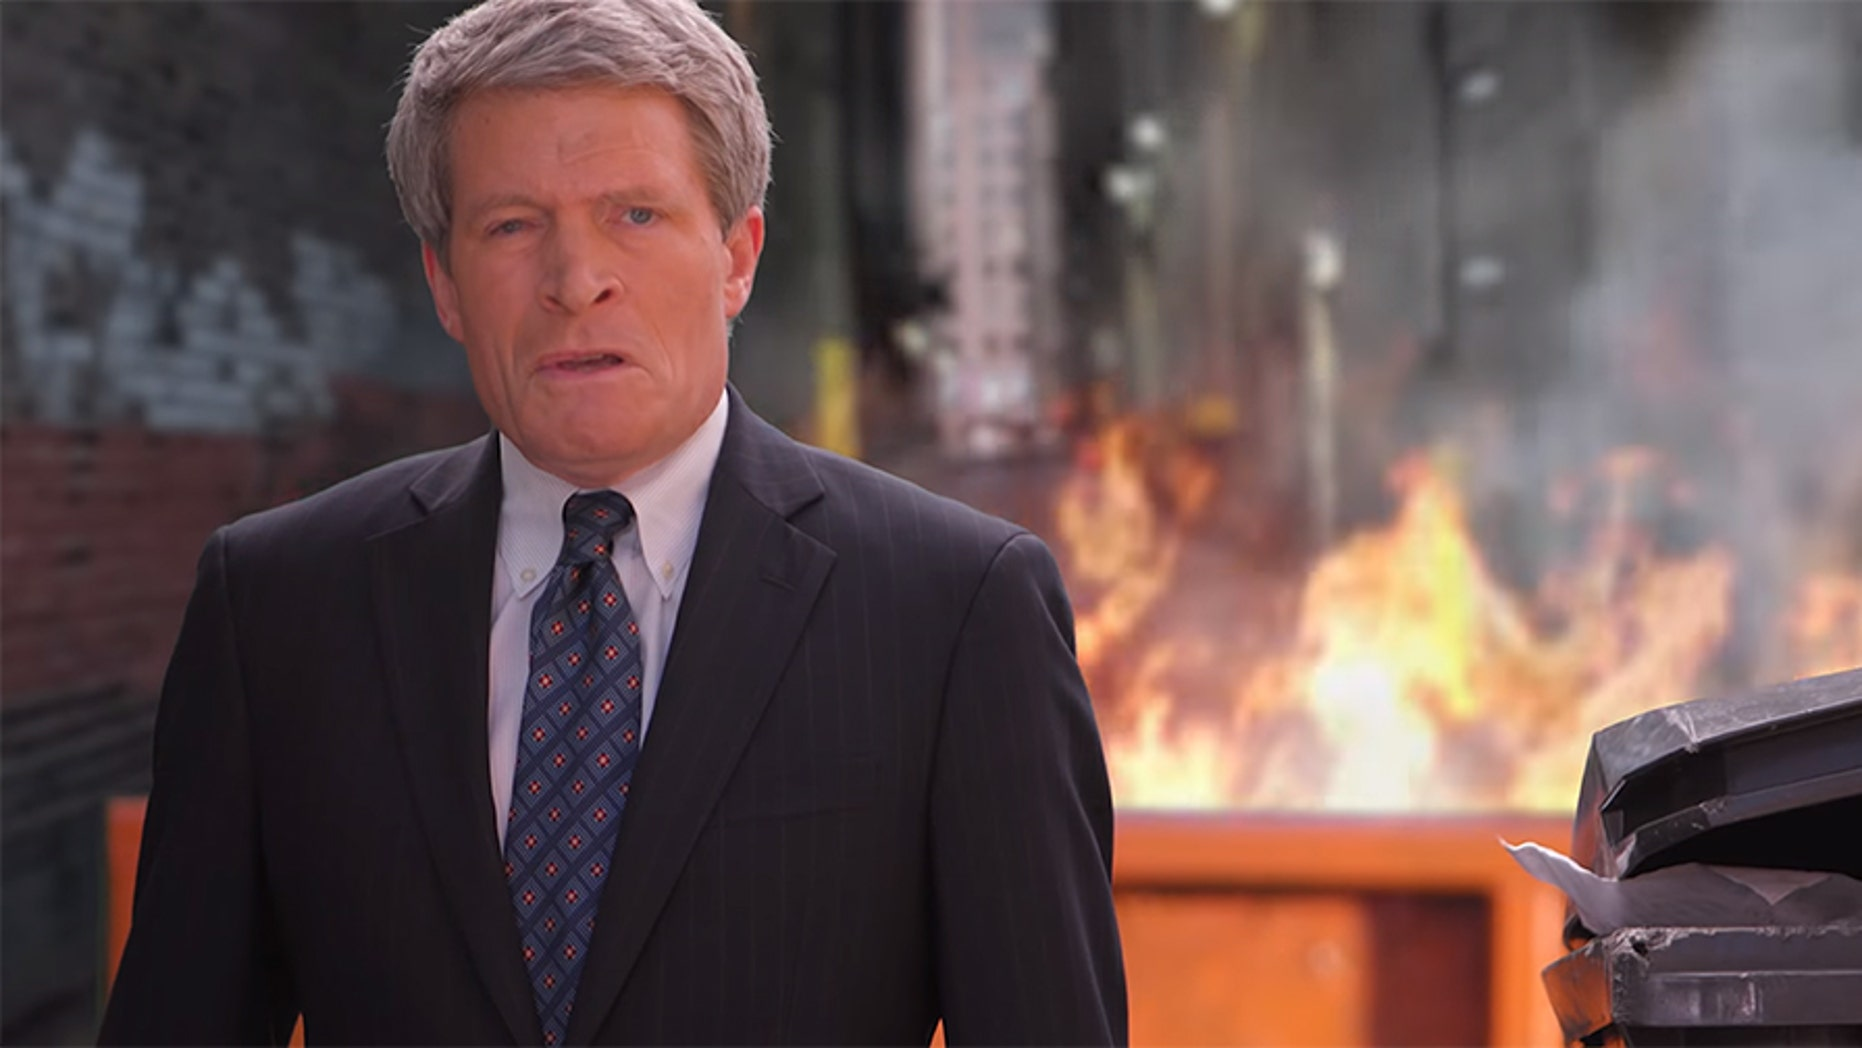 Only Richard Painter can prevent dumpster fires.